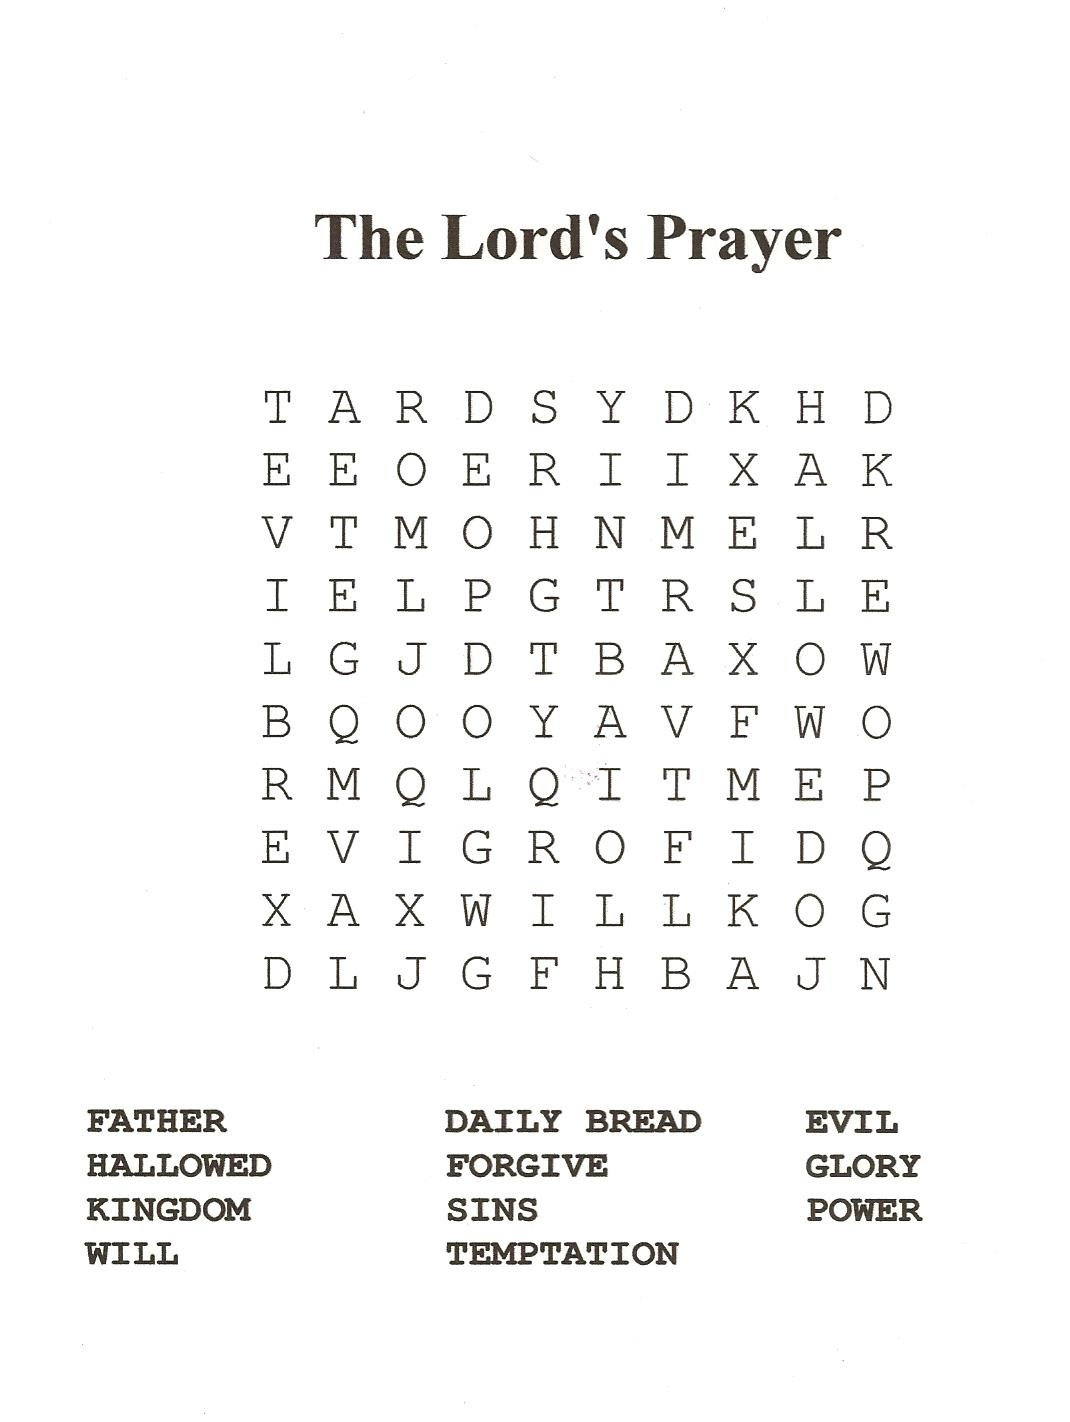 18 Fun Printable Bible Word Search Puzzles | Kittybabylove - Christian Word Search Puzzles Free Printable